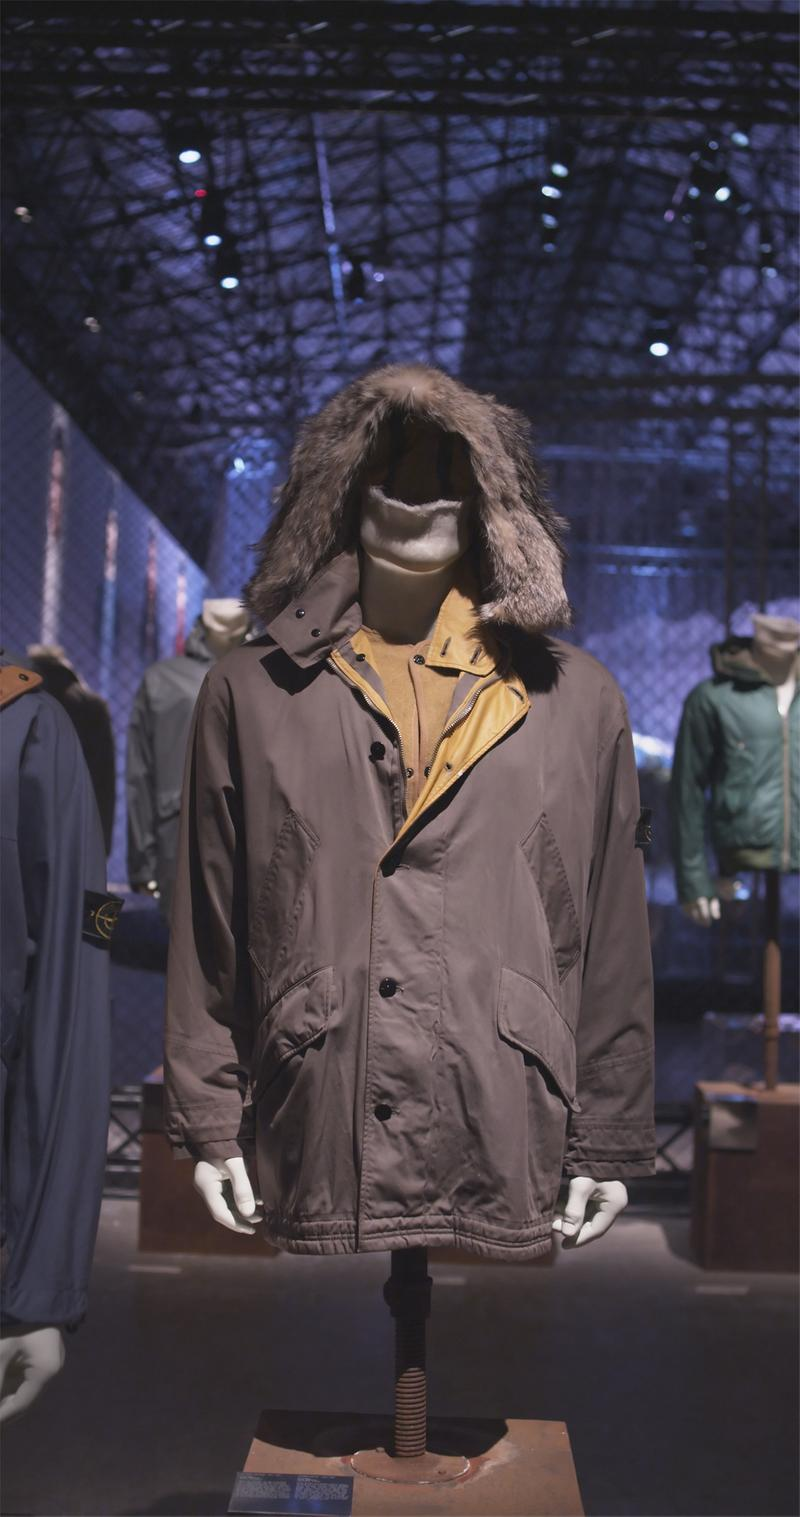 Dark colored button up jacket with fur trimmed hood, flap pockets, and yellow interior details displayed on mannequin bust in exhibition hall